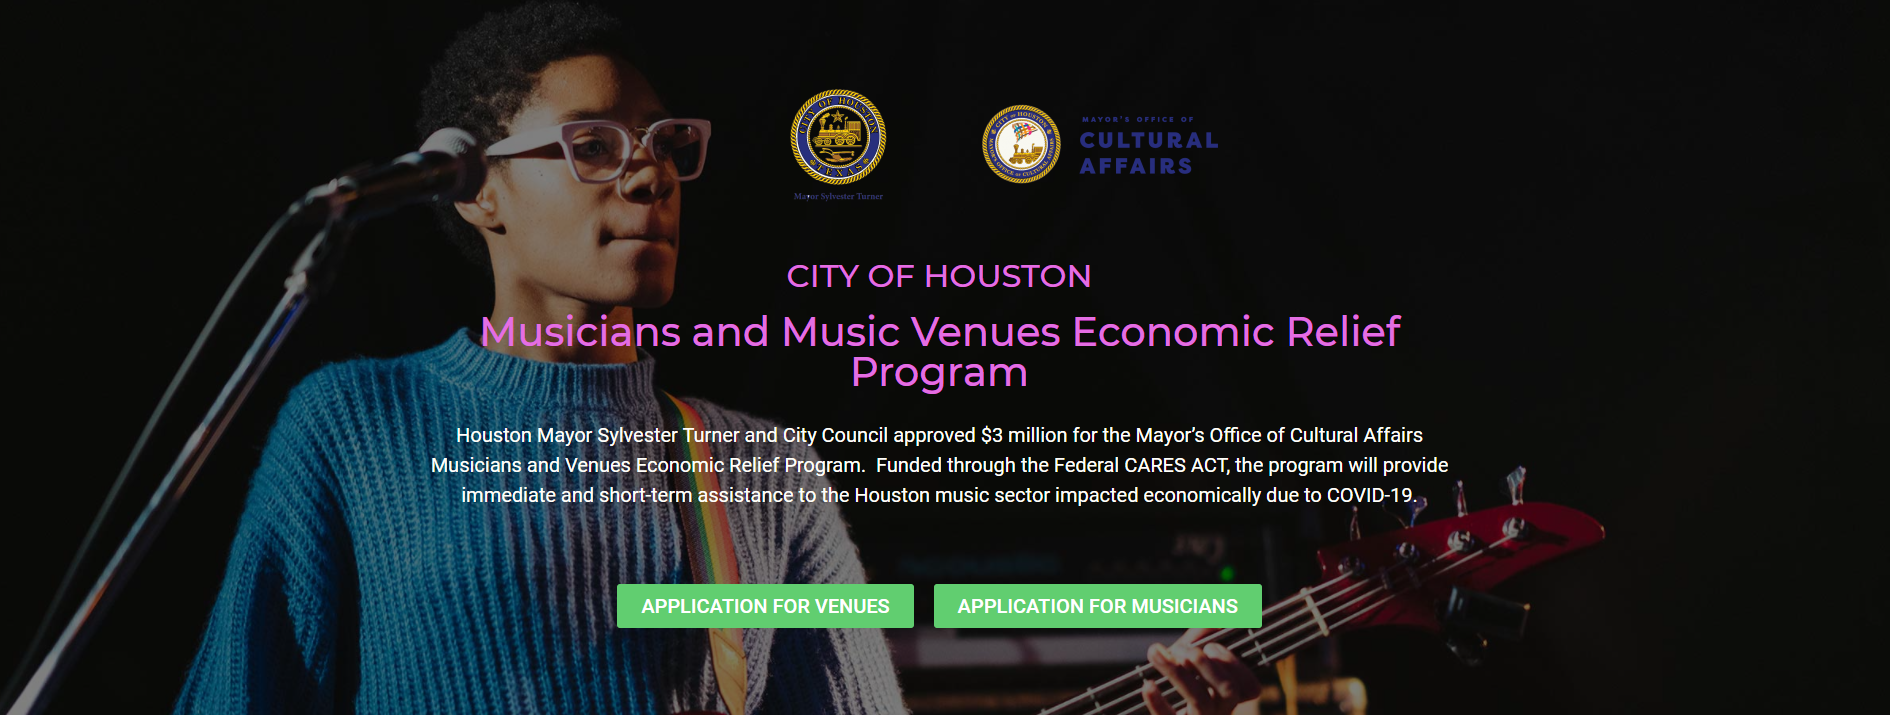 "Graphic of the Musicians and Music Venues Economic Relief Program. Text above an image of a woman with a guitar says ""Houston Mayor Sylvester Turner and City Council approved $3 million for the Mayor's Office of Cultural Affairs Musicians and Venues Economic Relief Program. Funded through the Federal CARES ACT, the program will provide immediate and short term assistance to the Houston music sector impacted economically due to COVID1-19"